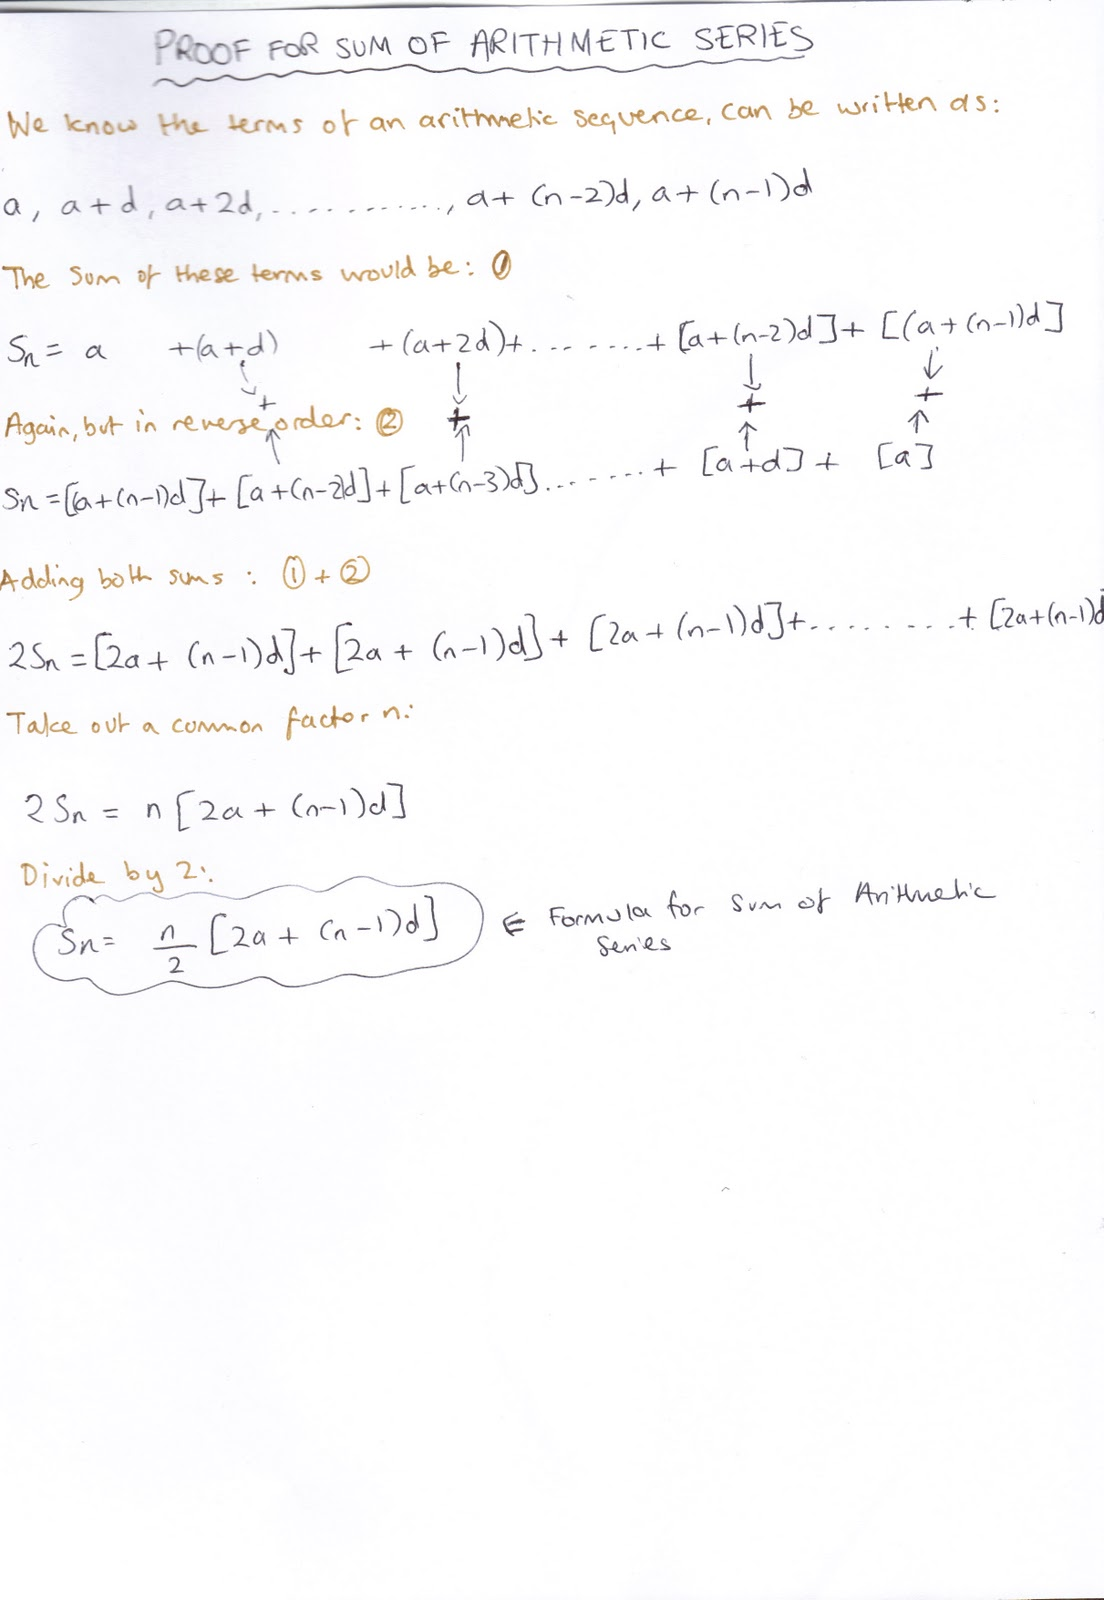 worksheet Arithmetic Series Worksheet a level mathematics sequences and series proof for the sum of arithmetic series